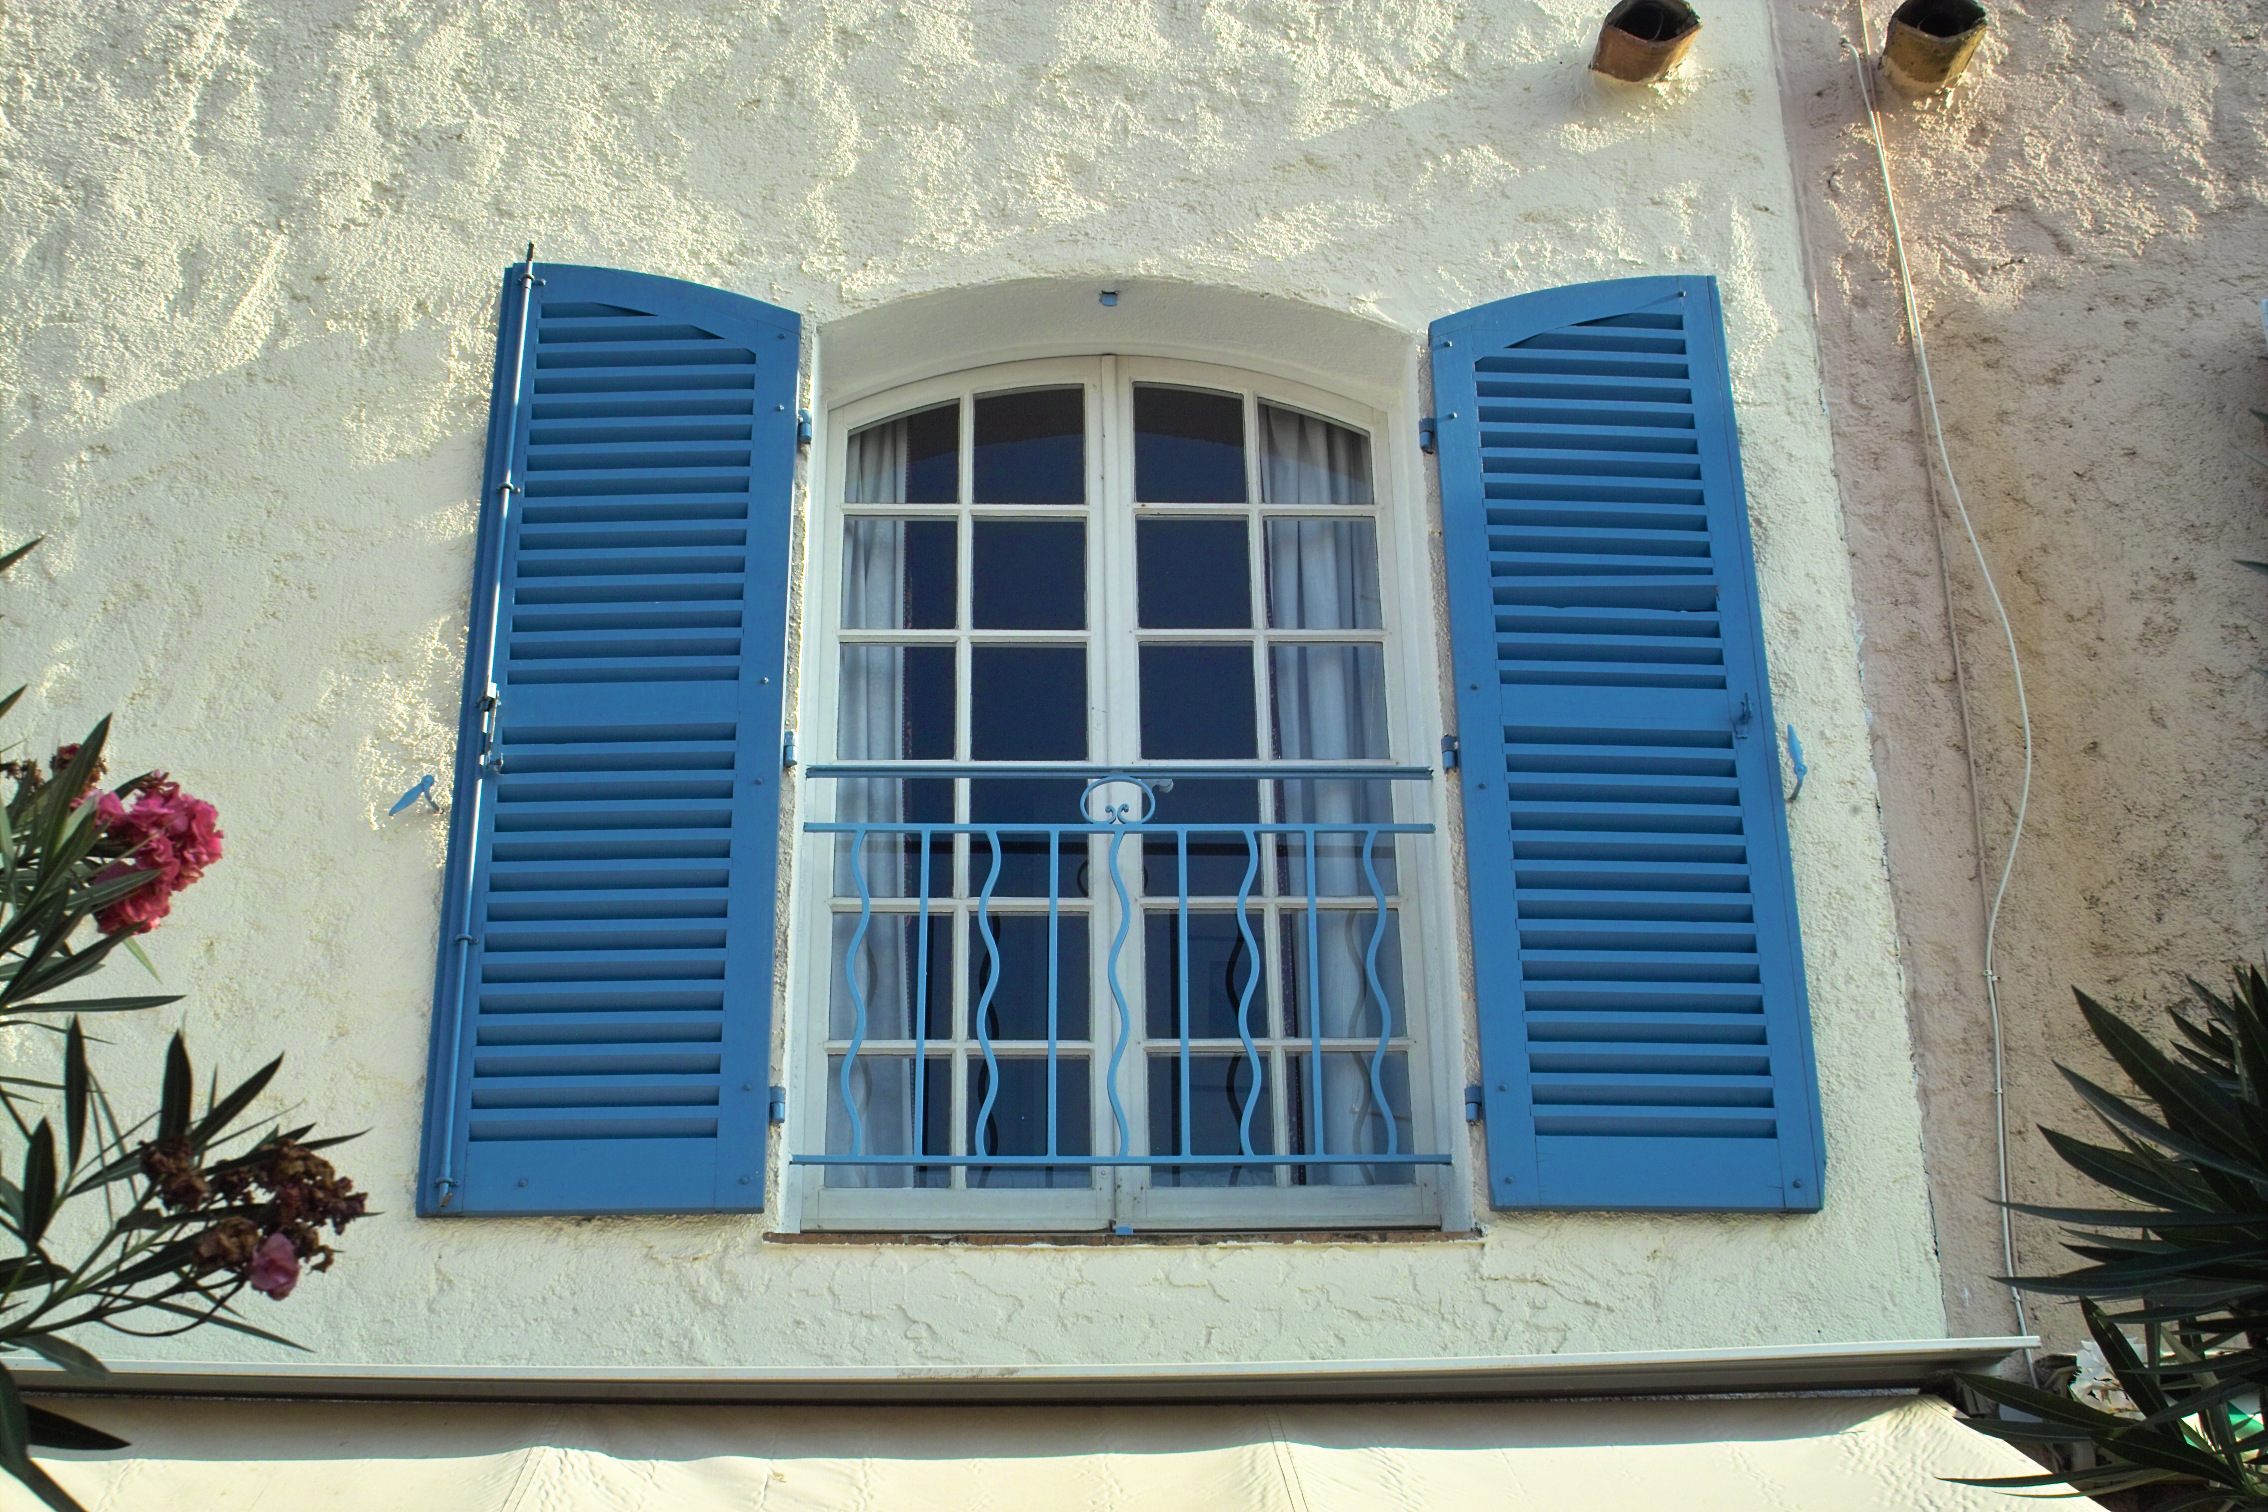 shutters are one of the classiest window treatments you can put on